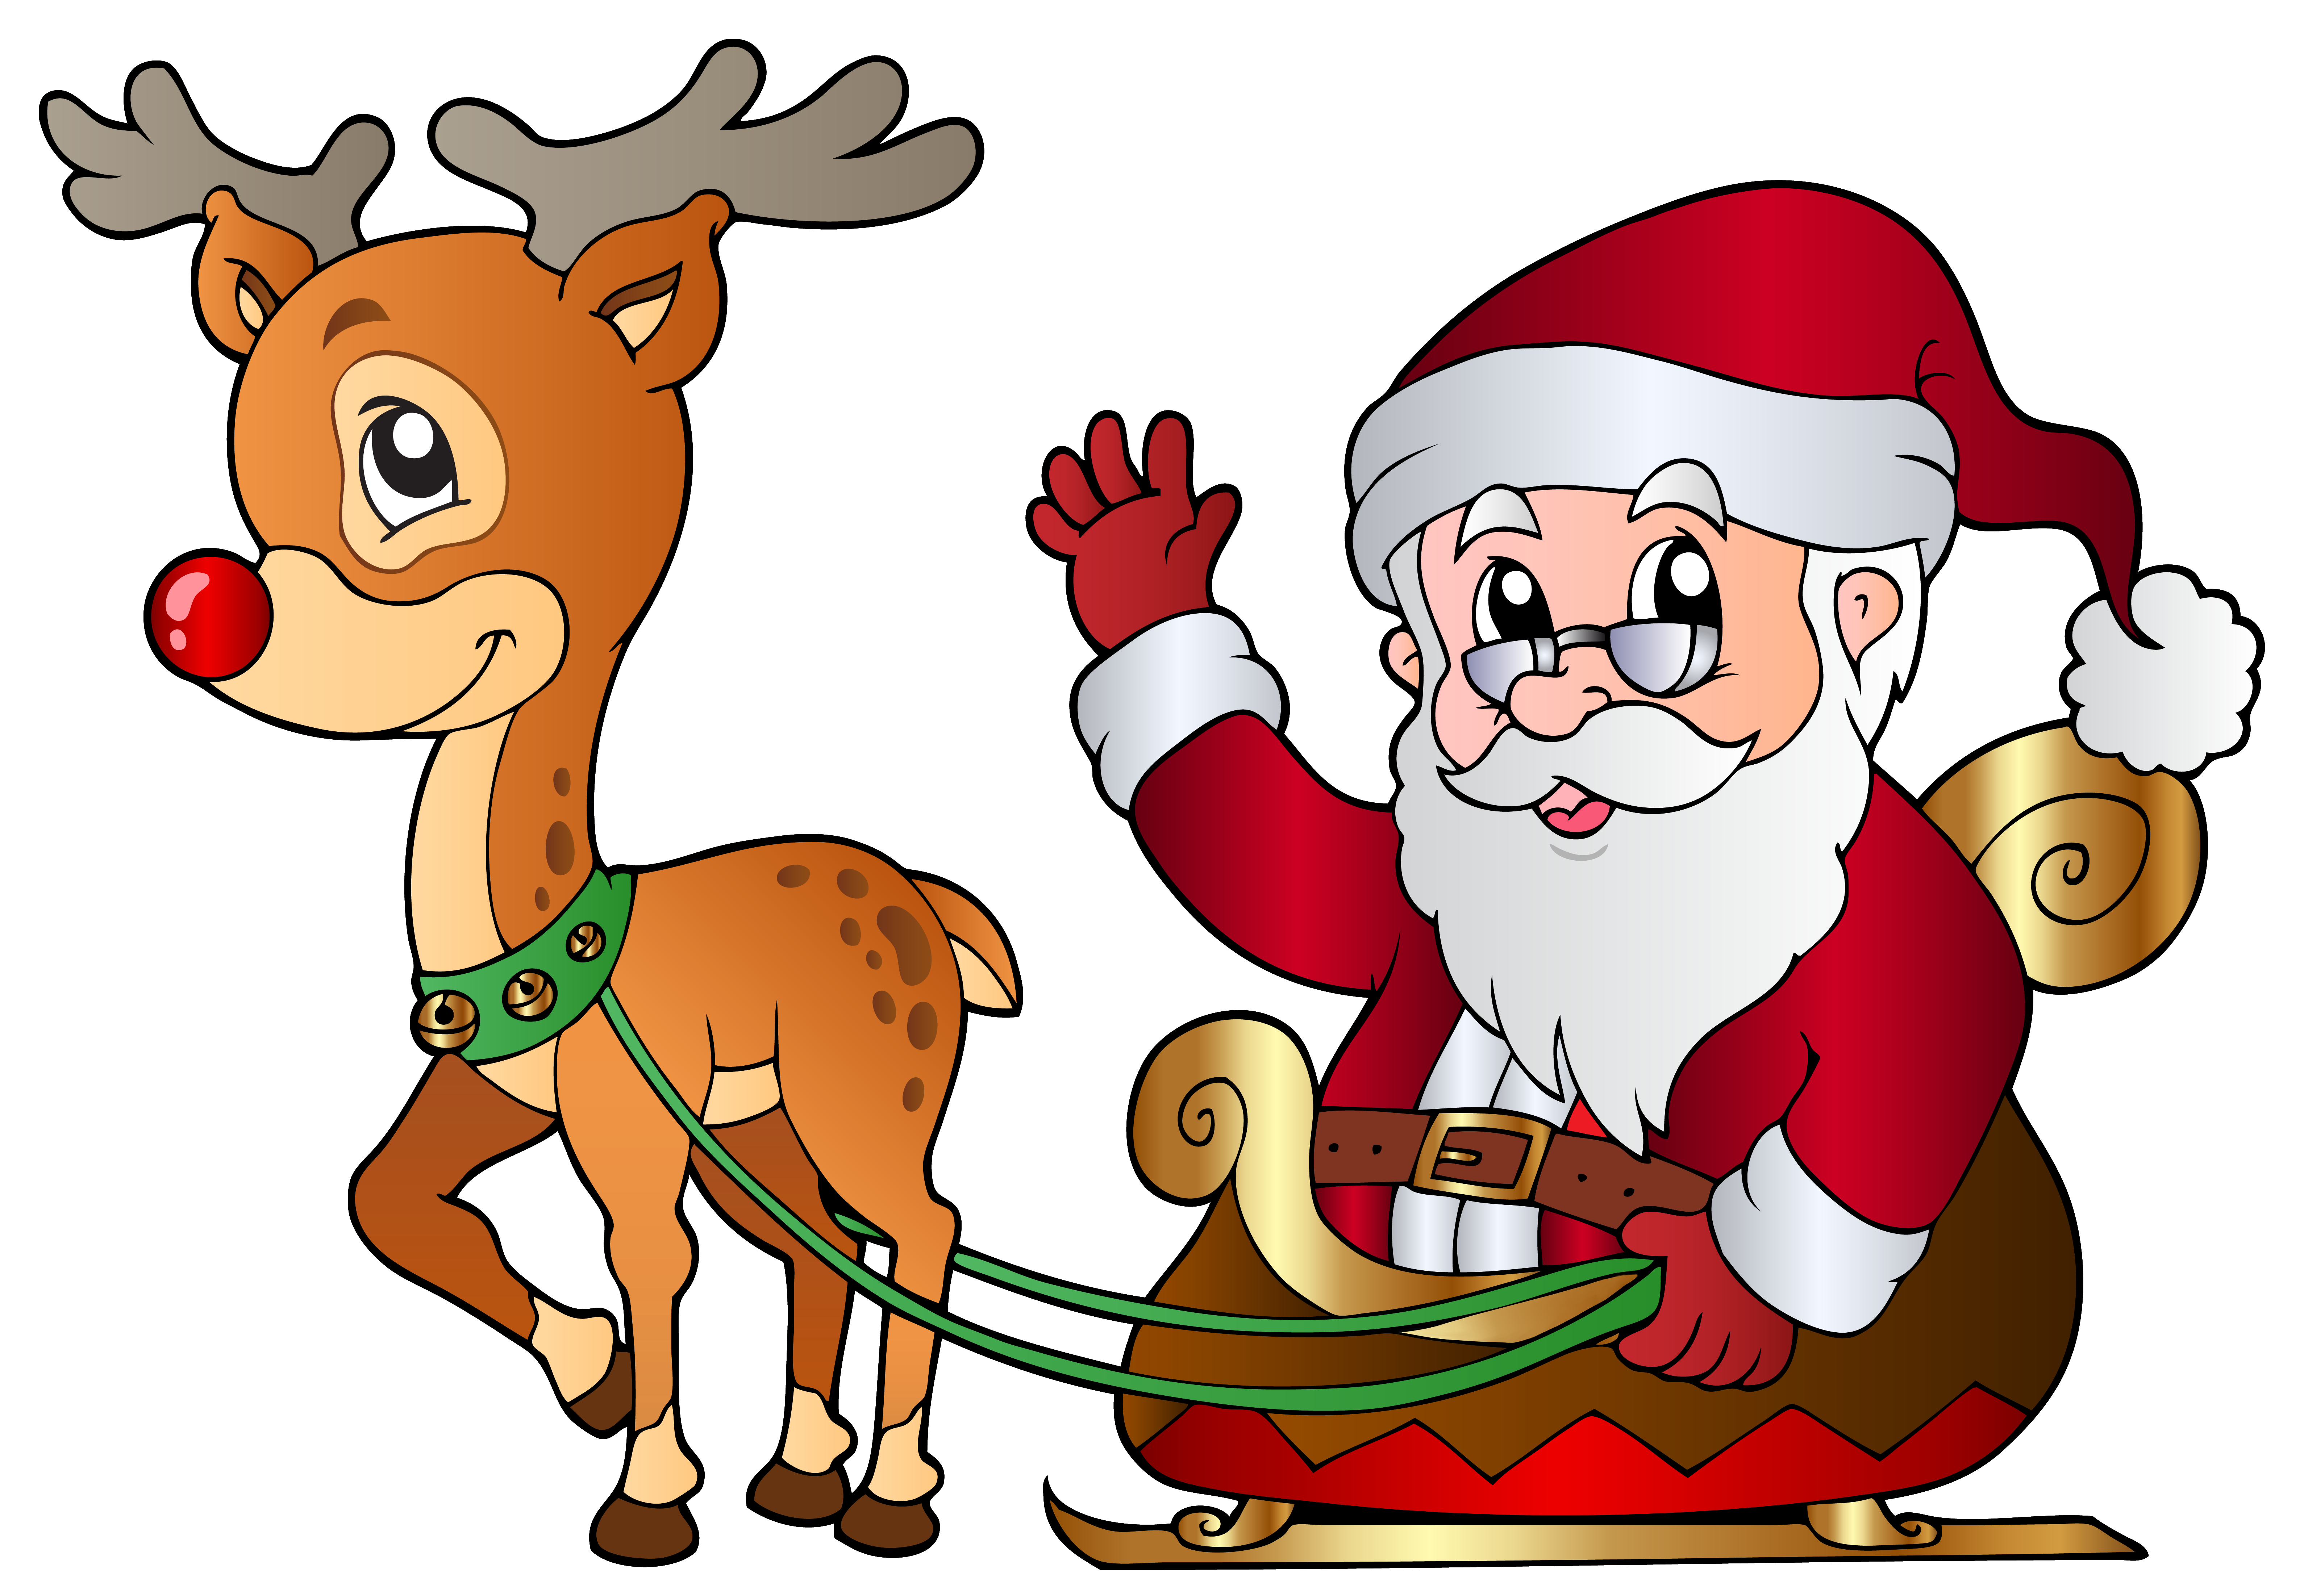 freeuse download And rudolph png image. Santa clipart.